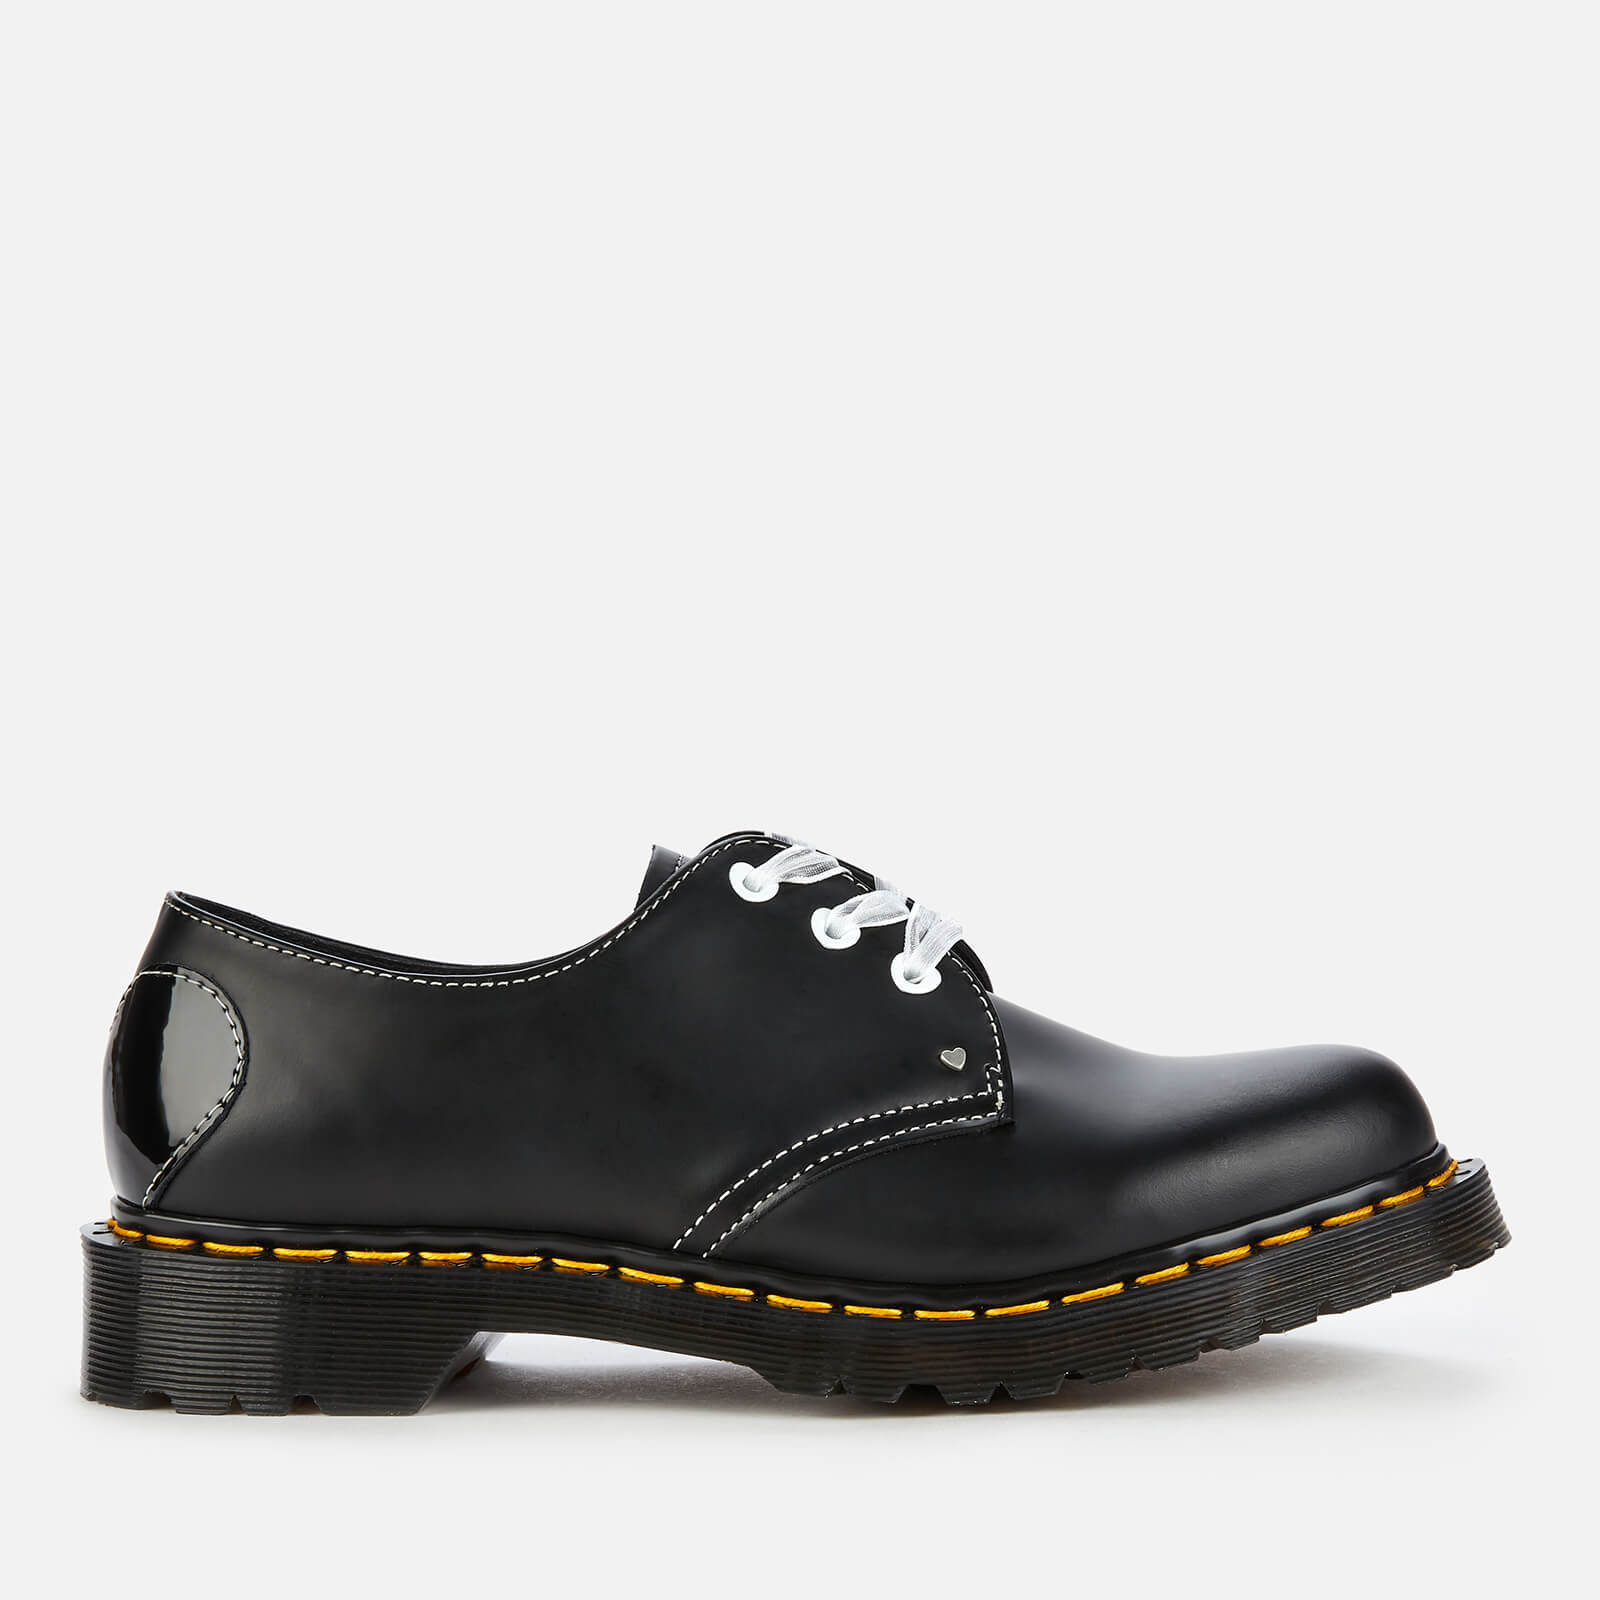 Dr. Martens Women's 1461 Hearts Smooth Leather 3-Eye Shoes - Black - UK 3